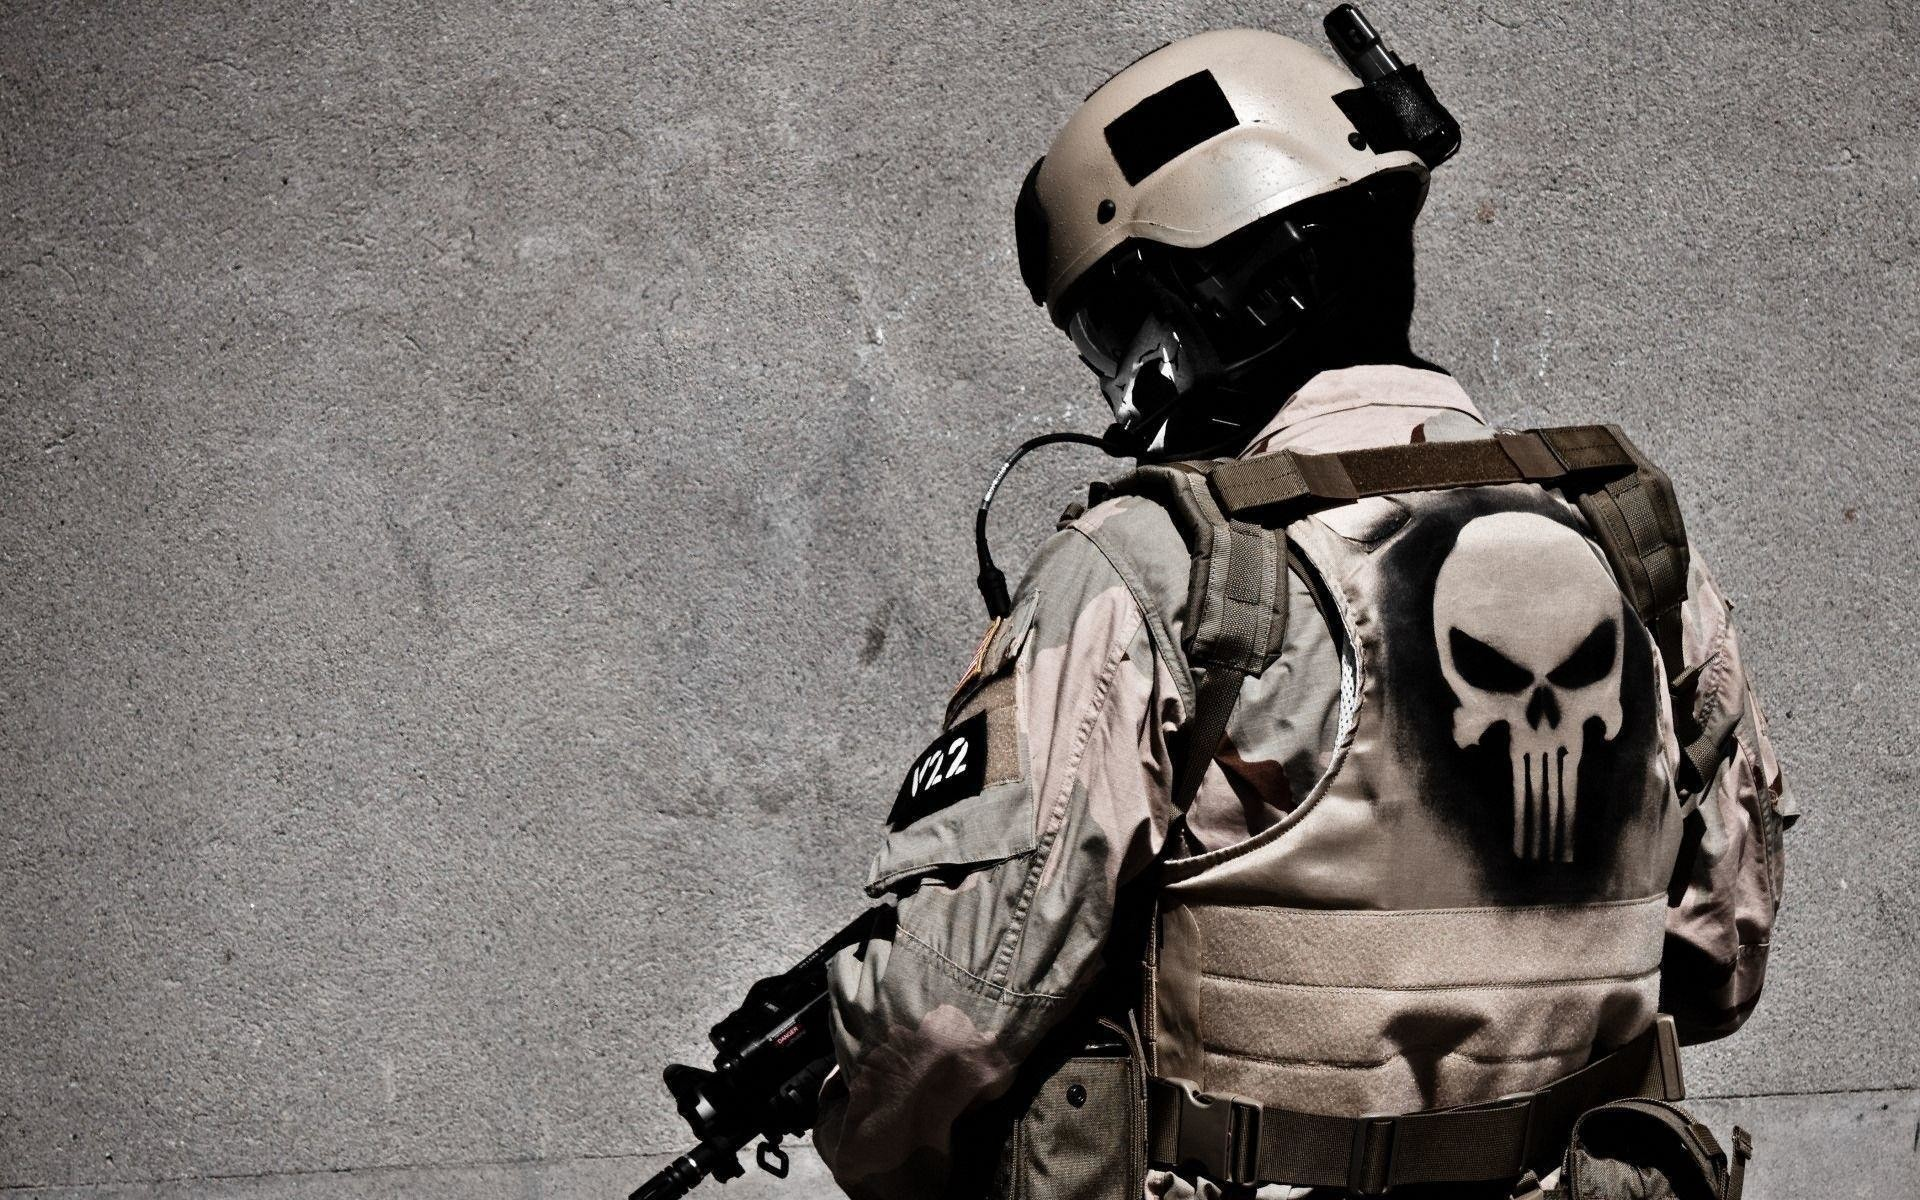 Res: 1920x1200, SWAT team wallpaper - Photography wallpapers - #17491 | S.W.A.T .